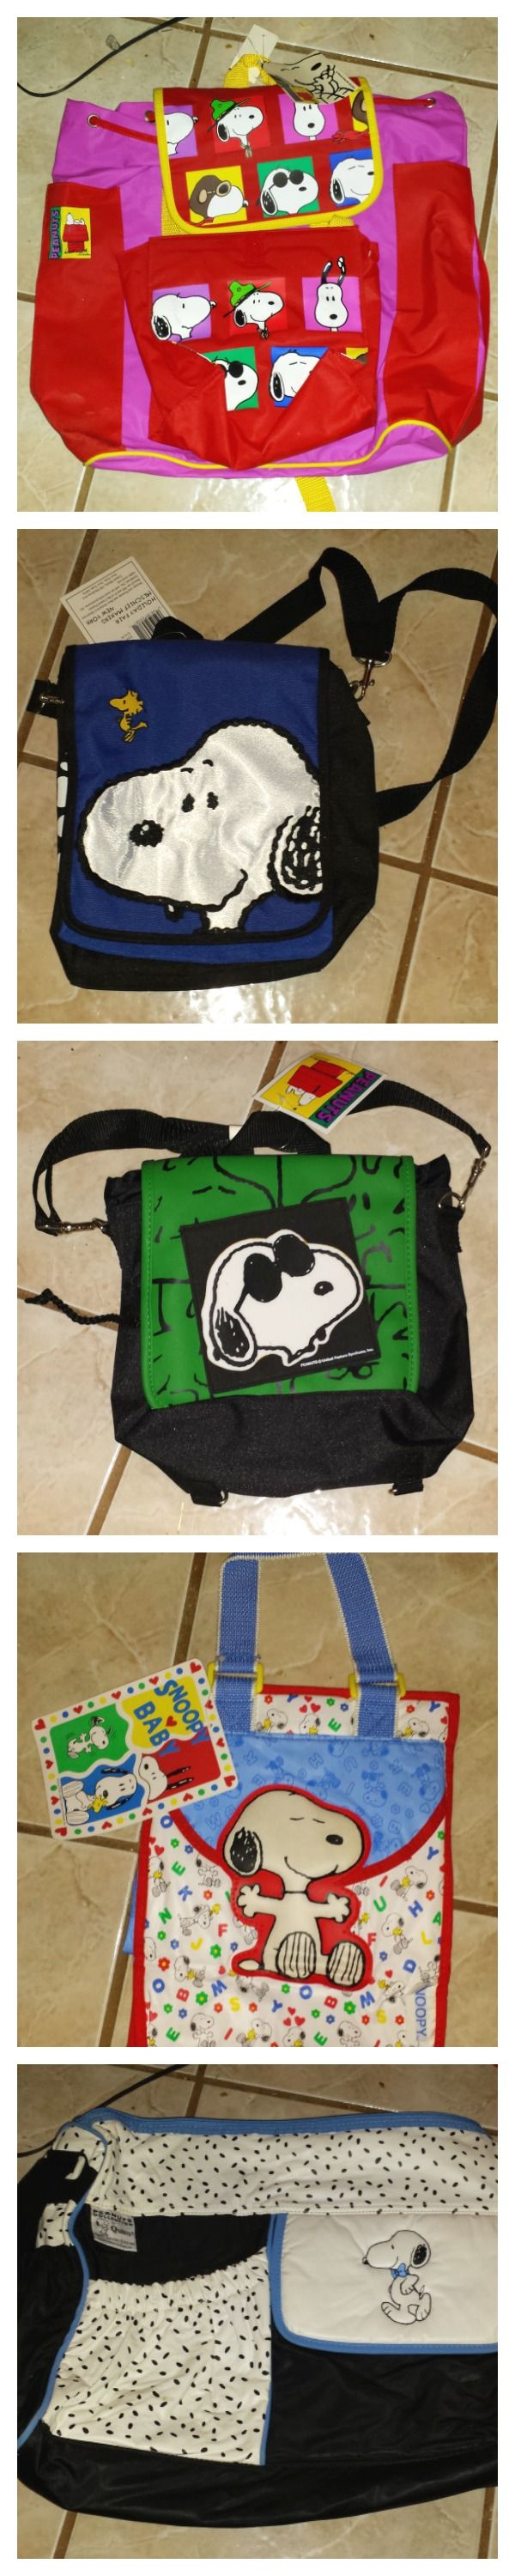 With a little help from my friends... Snoopy is here to help carry your stuff with a variety of fun backpacks, totes and bags. Buy them on SnoopyList.com, the free Peanuts classified ads site.